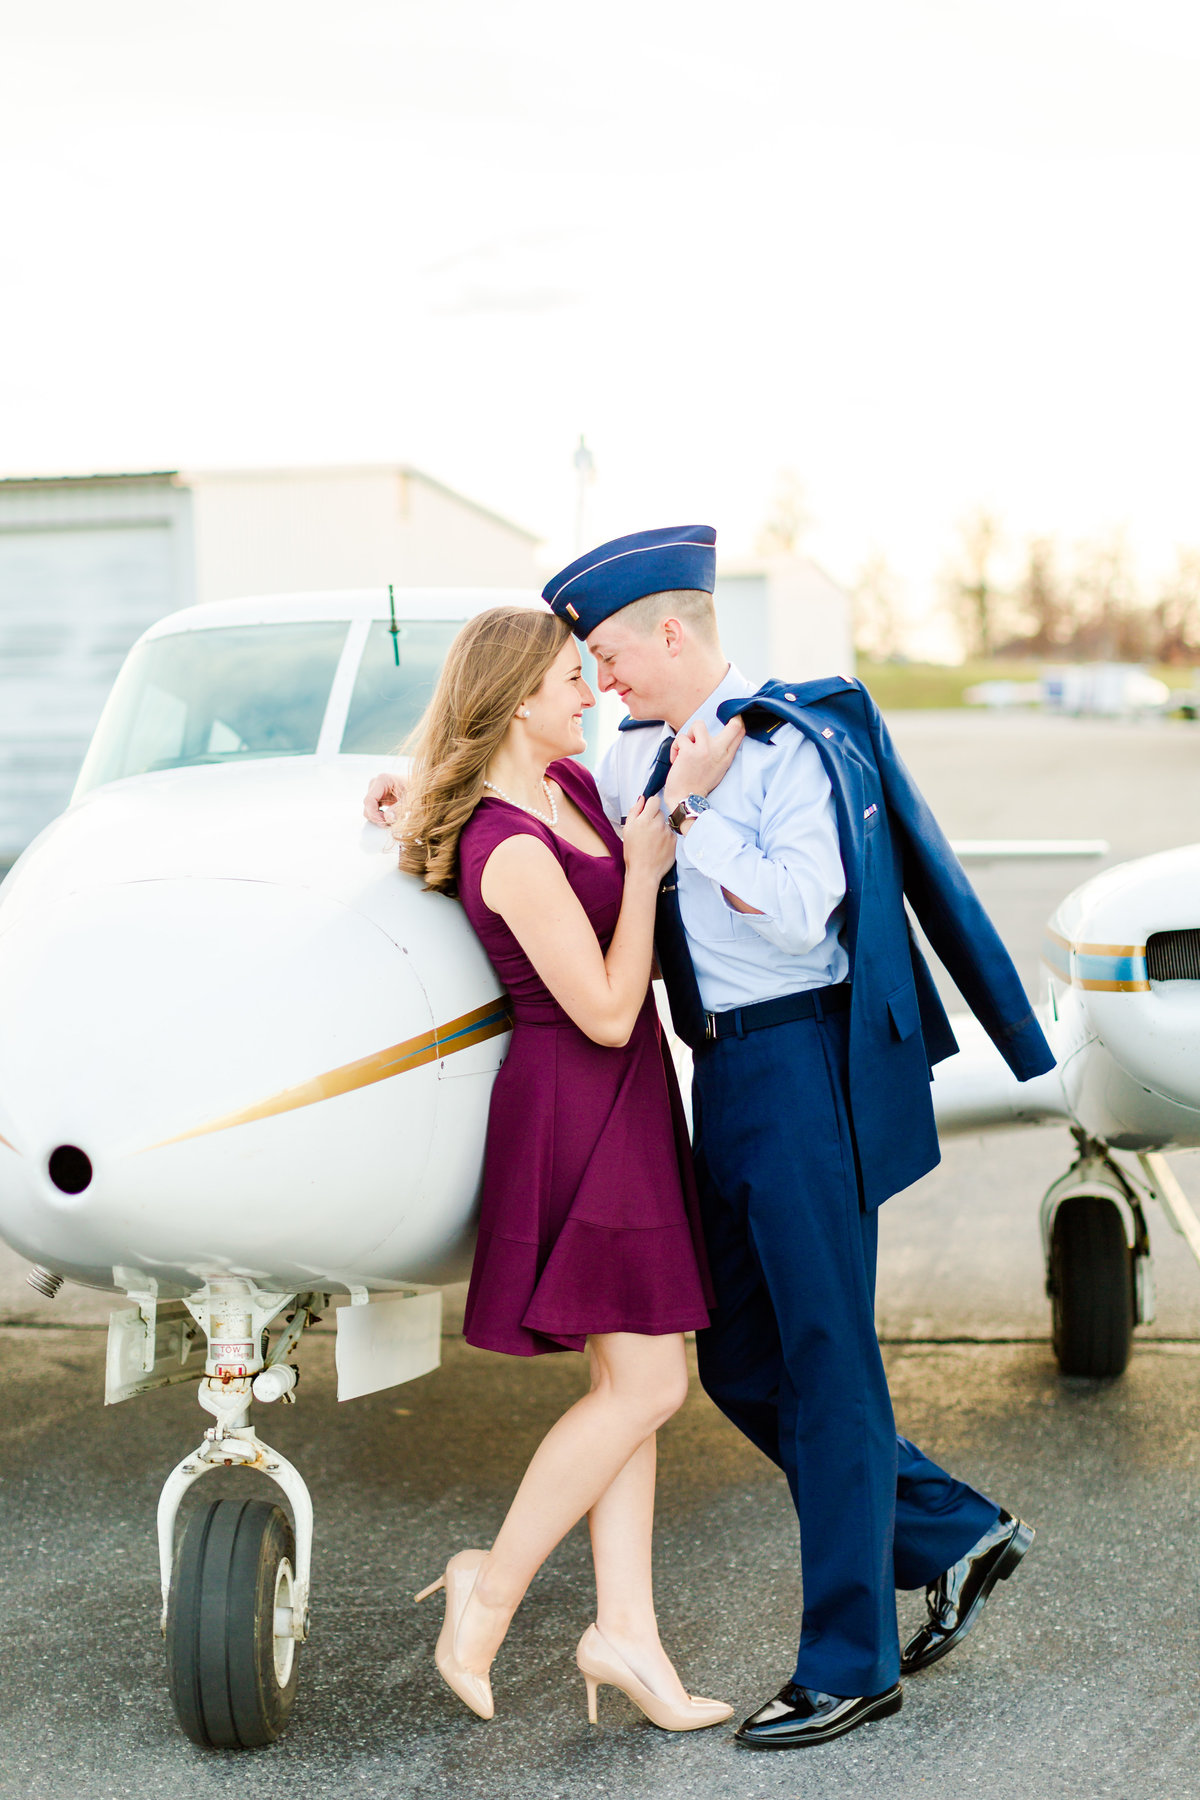 Airport Engagement Session Air Force Engagement Session at Shenandoah Valley Regional Airport in Weyers Cave, Virginia Emily Sacra Photography-52